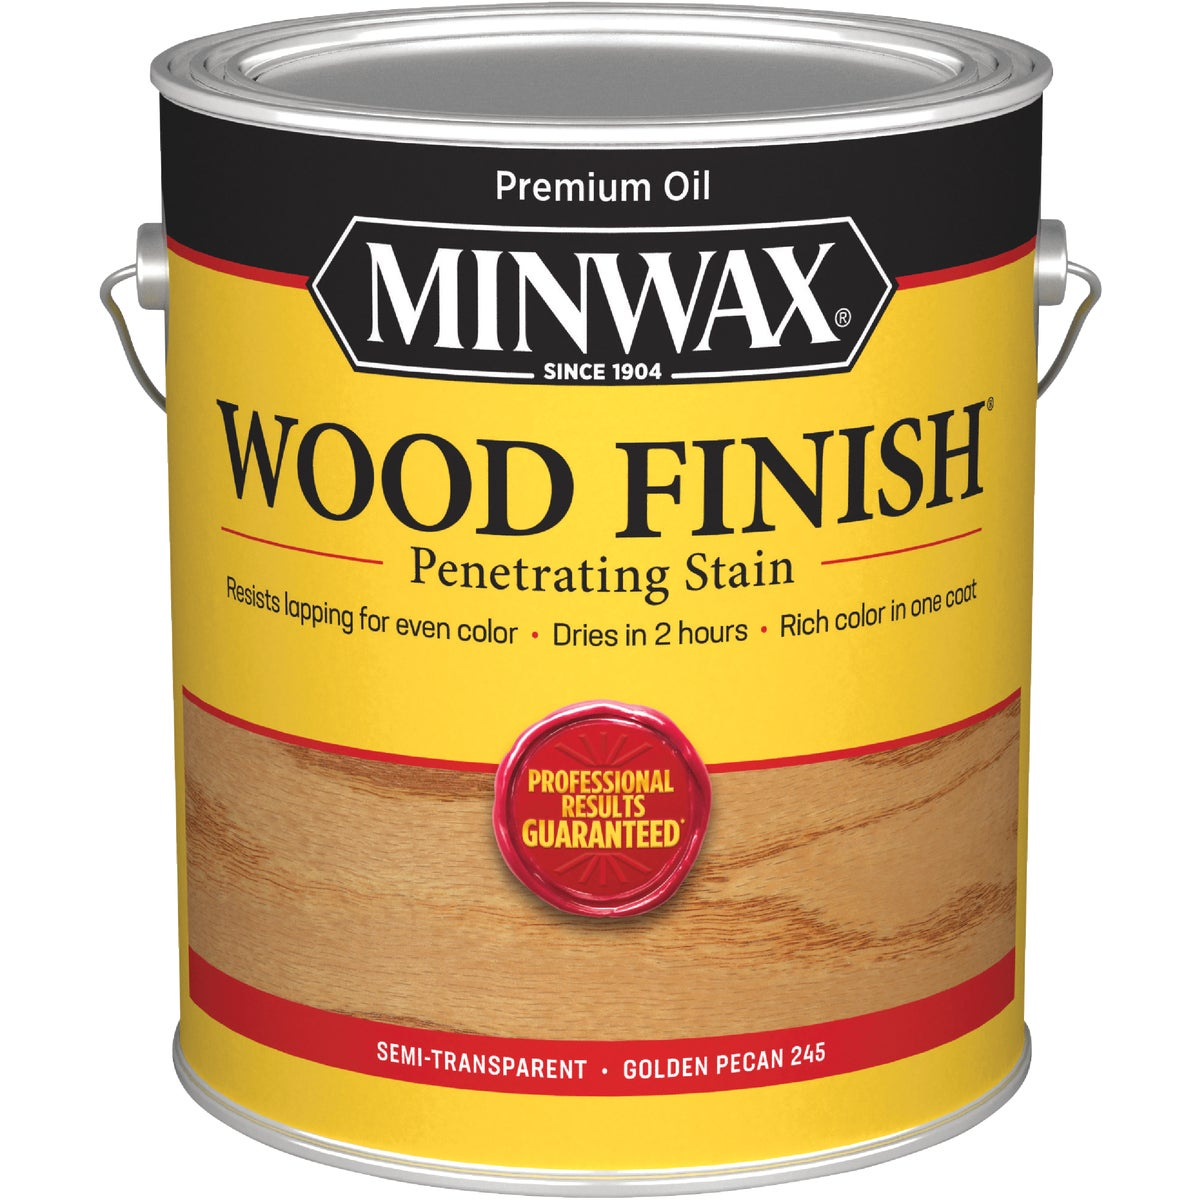 GOLDEN PECAN WOOD STAIN - 71041 by Minwax Company